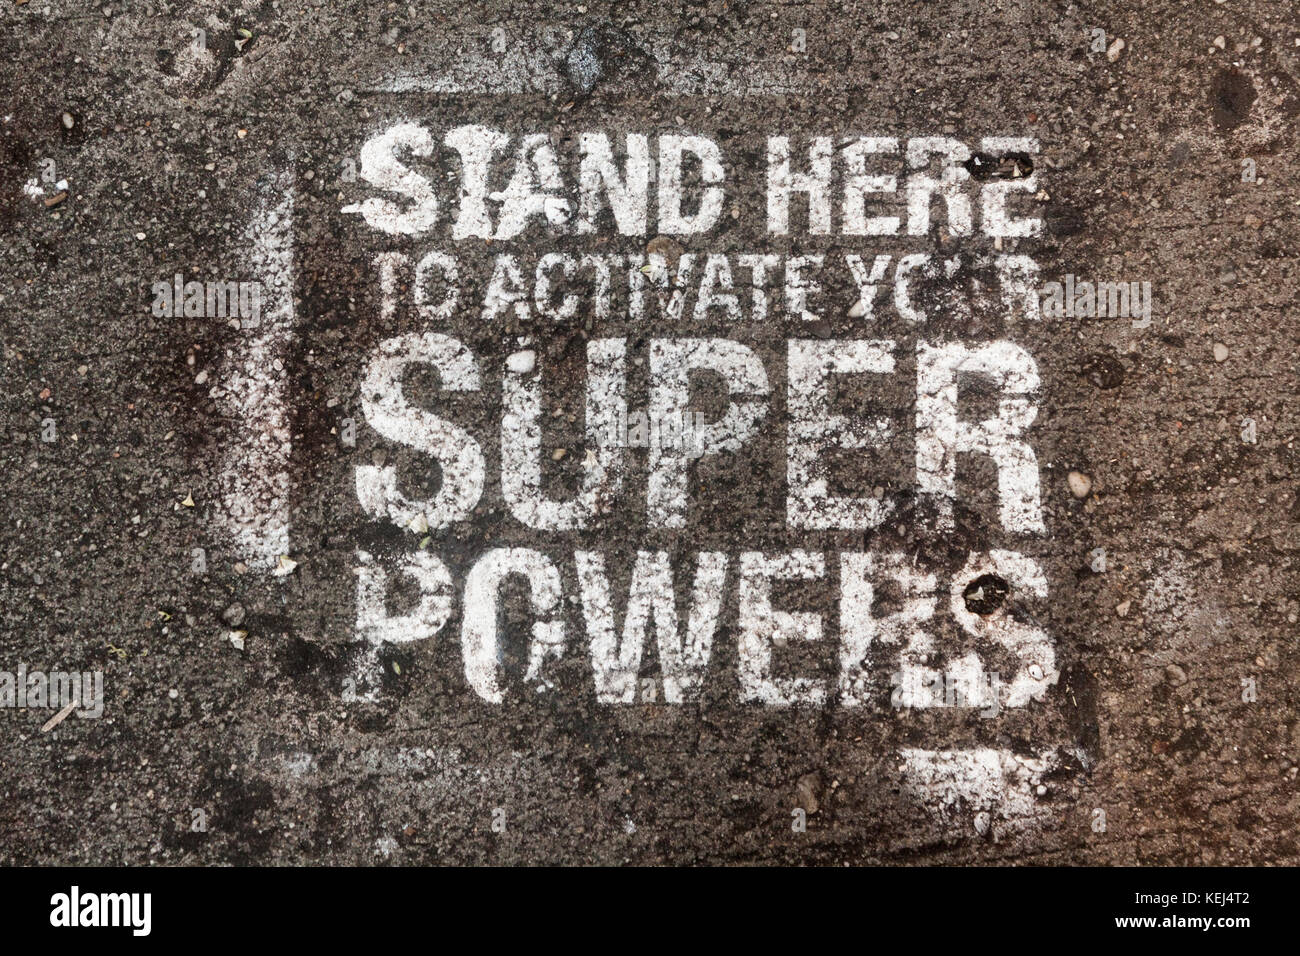 Stand Here to Activate Your Super Powers - spray-painted stencil on the sidewalk in NYC - Stock Image